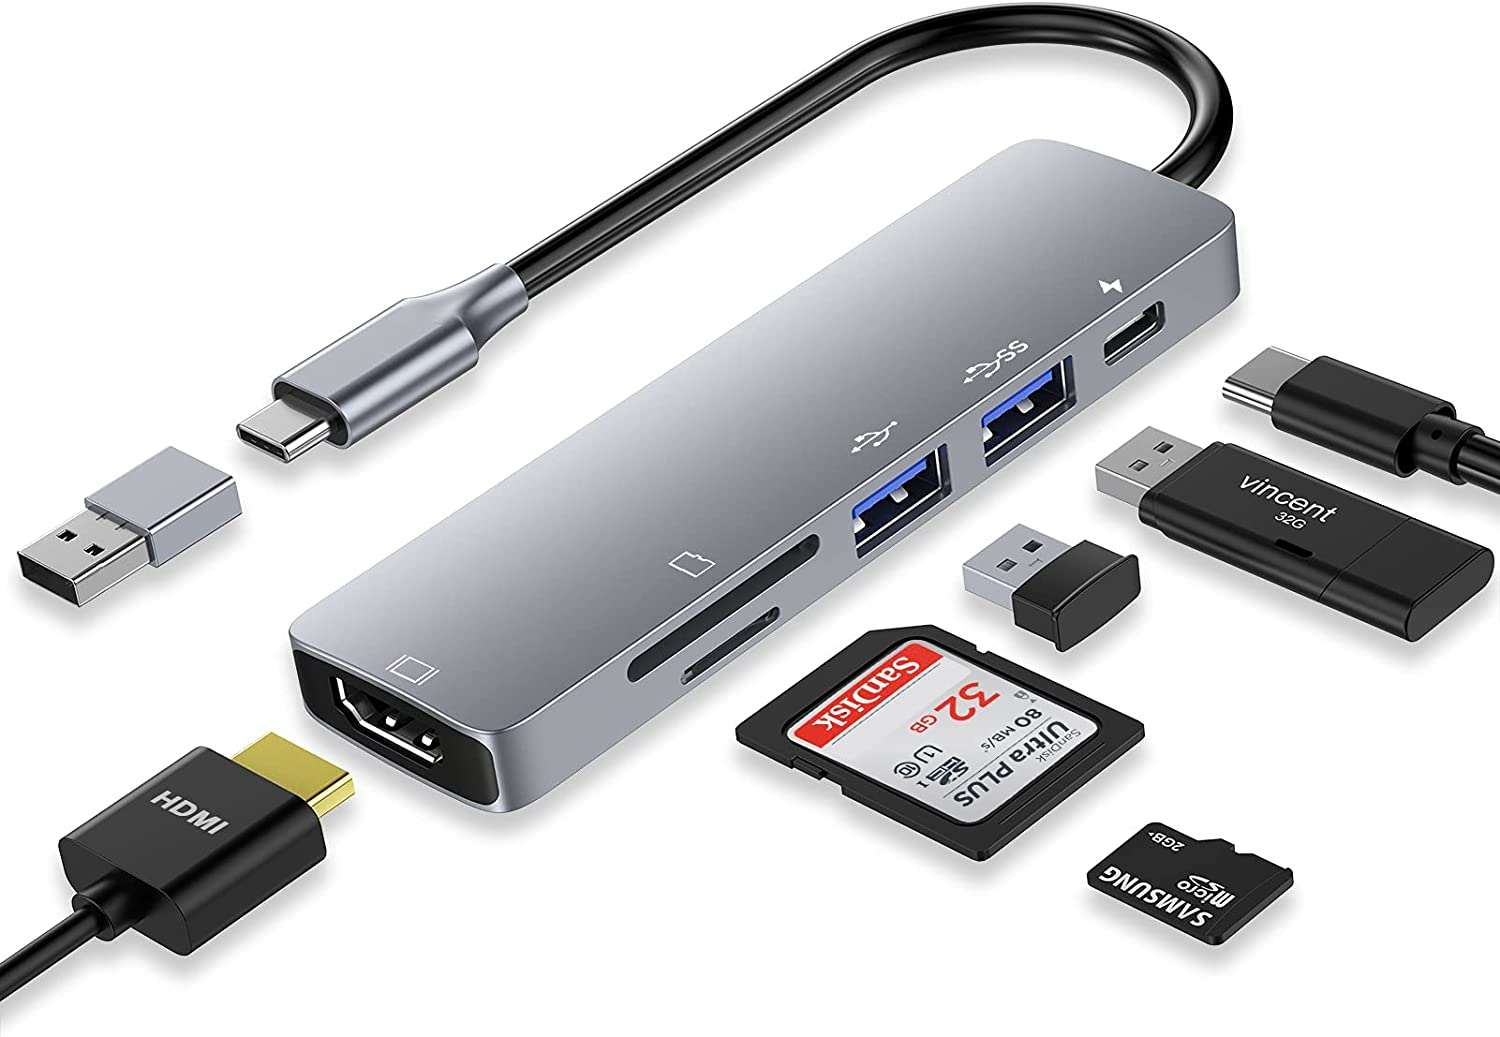 USB C HUB, 6 in 1 USB C Laptop Docking Station Dual Monitor with 4K HDMI, 2 USB 3.0, SD/Micro SD Card Reader, 87W PD Charging and USB C to A Adapter Compatible for MacBook Pro, Surface and More (grey)